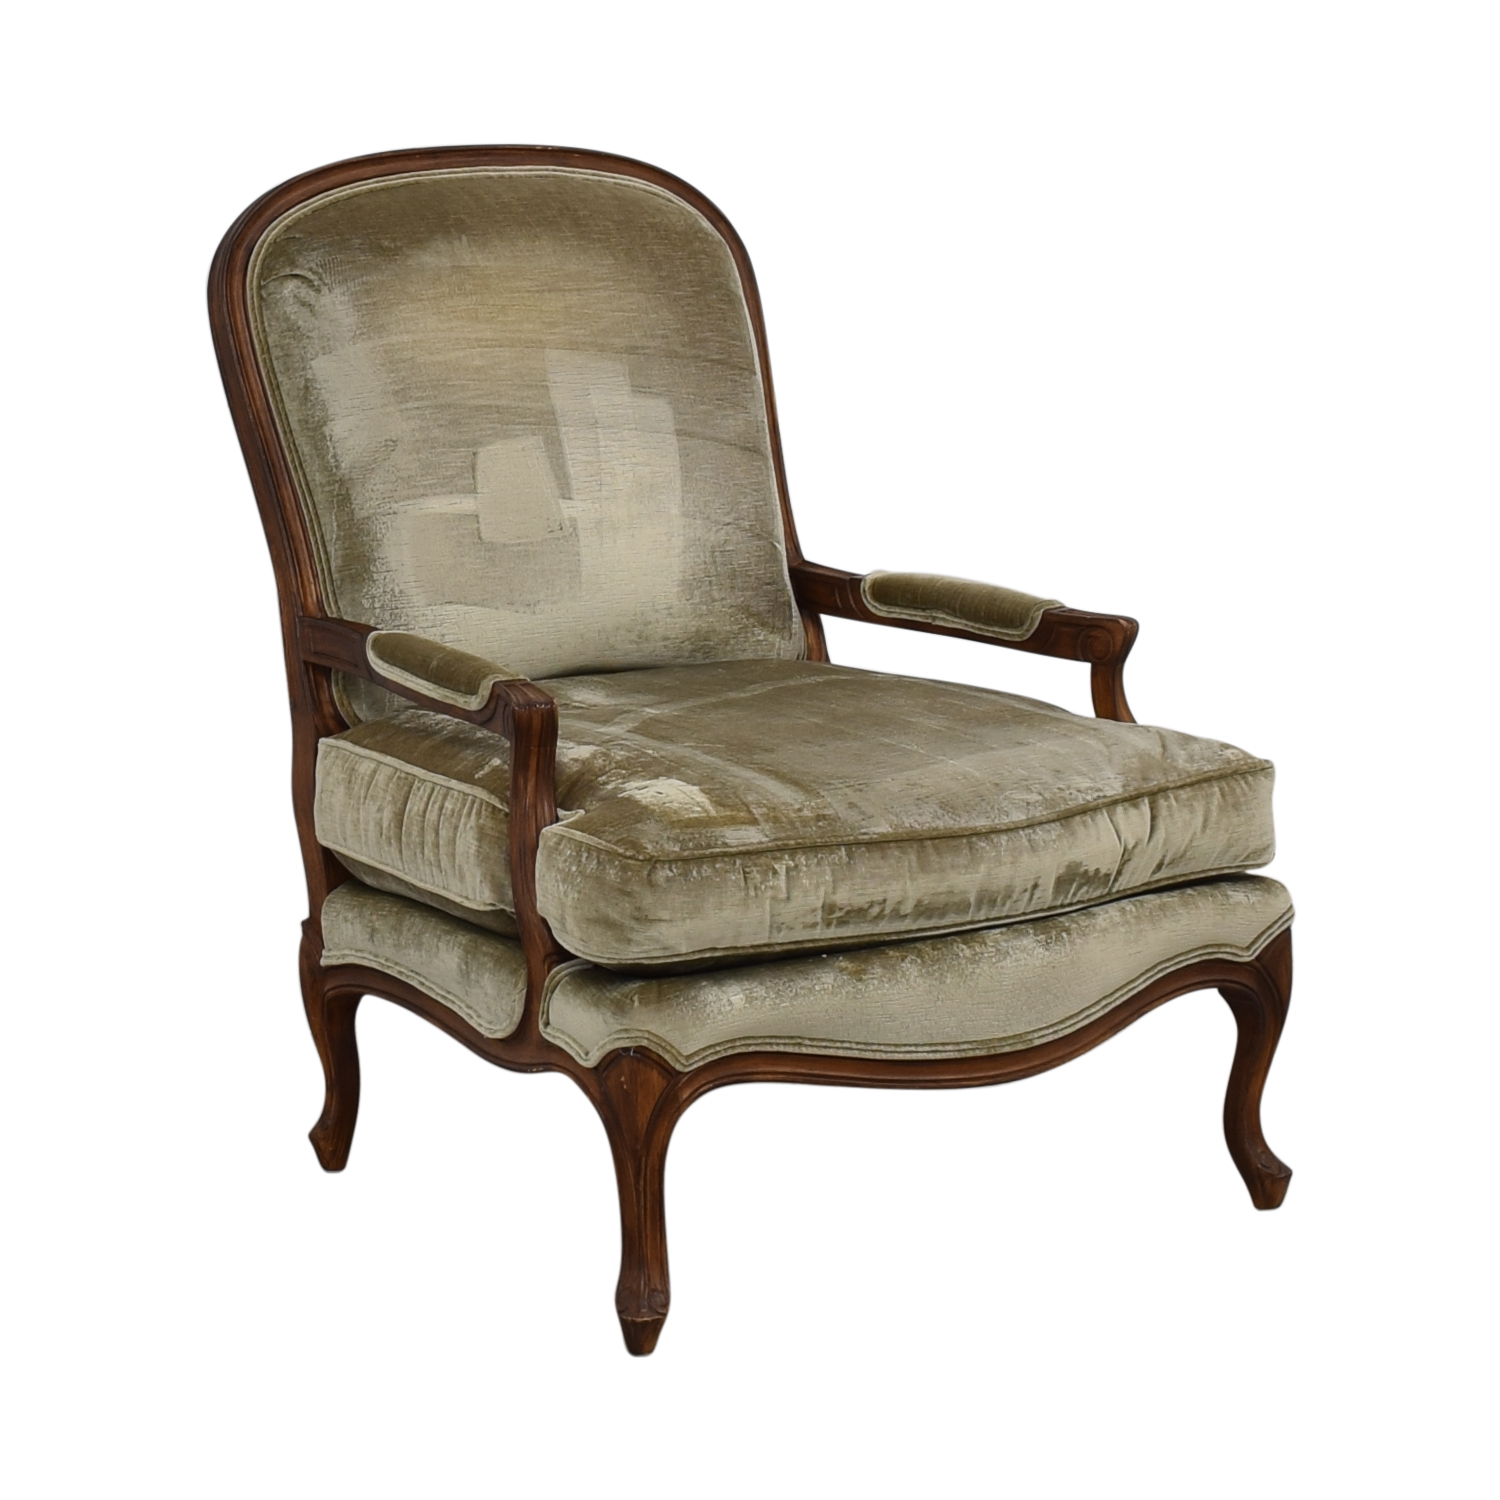 Drexel Heritage Country French Accent Chair / Accent Chairs